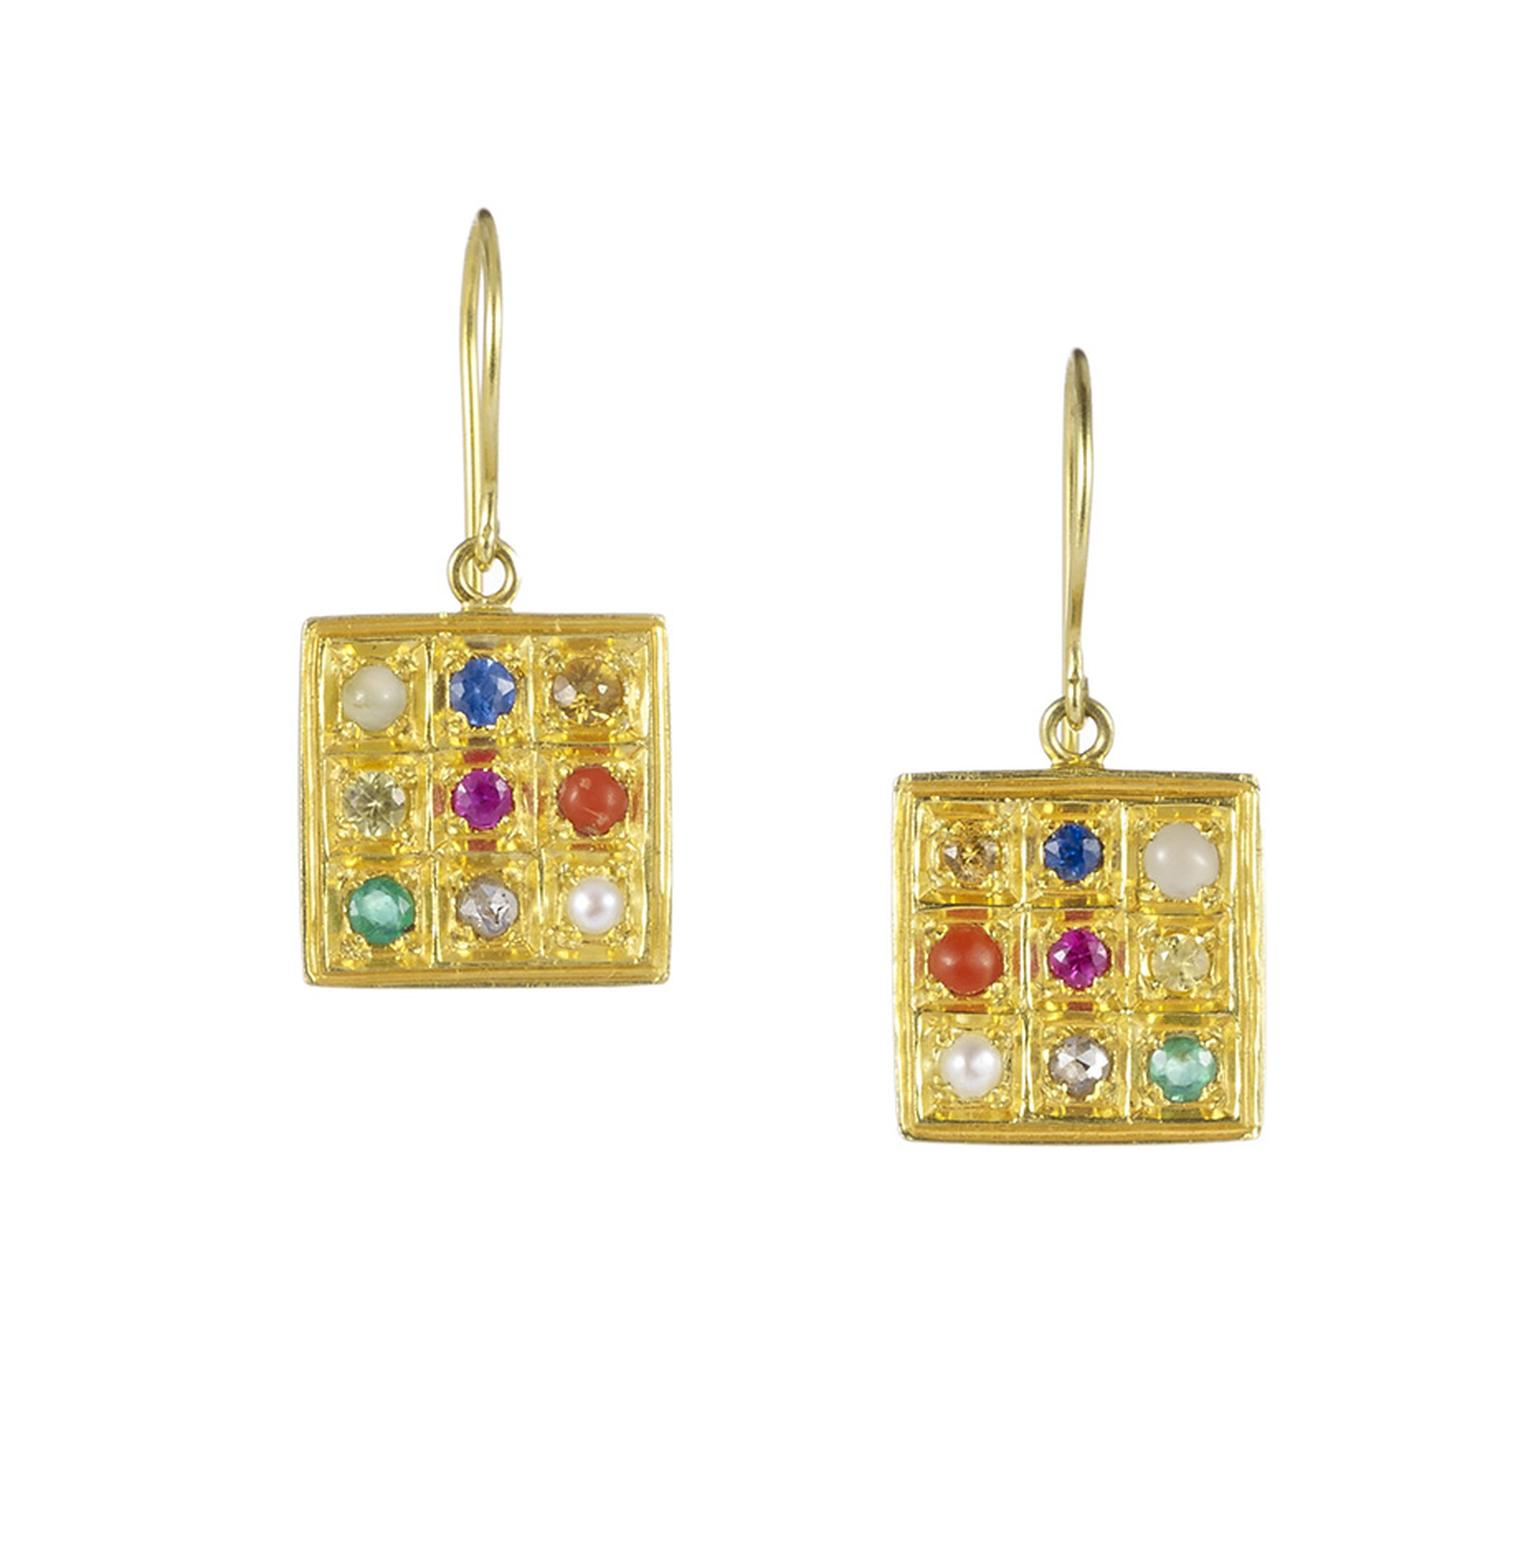 Pippa Small Navaratna earrings in yellow gold with multi-coloured gemstones